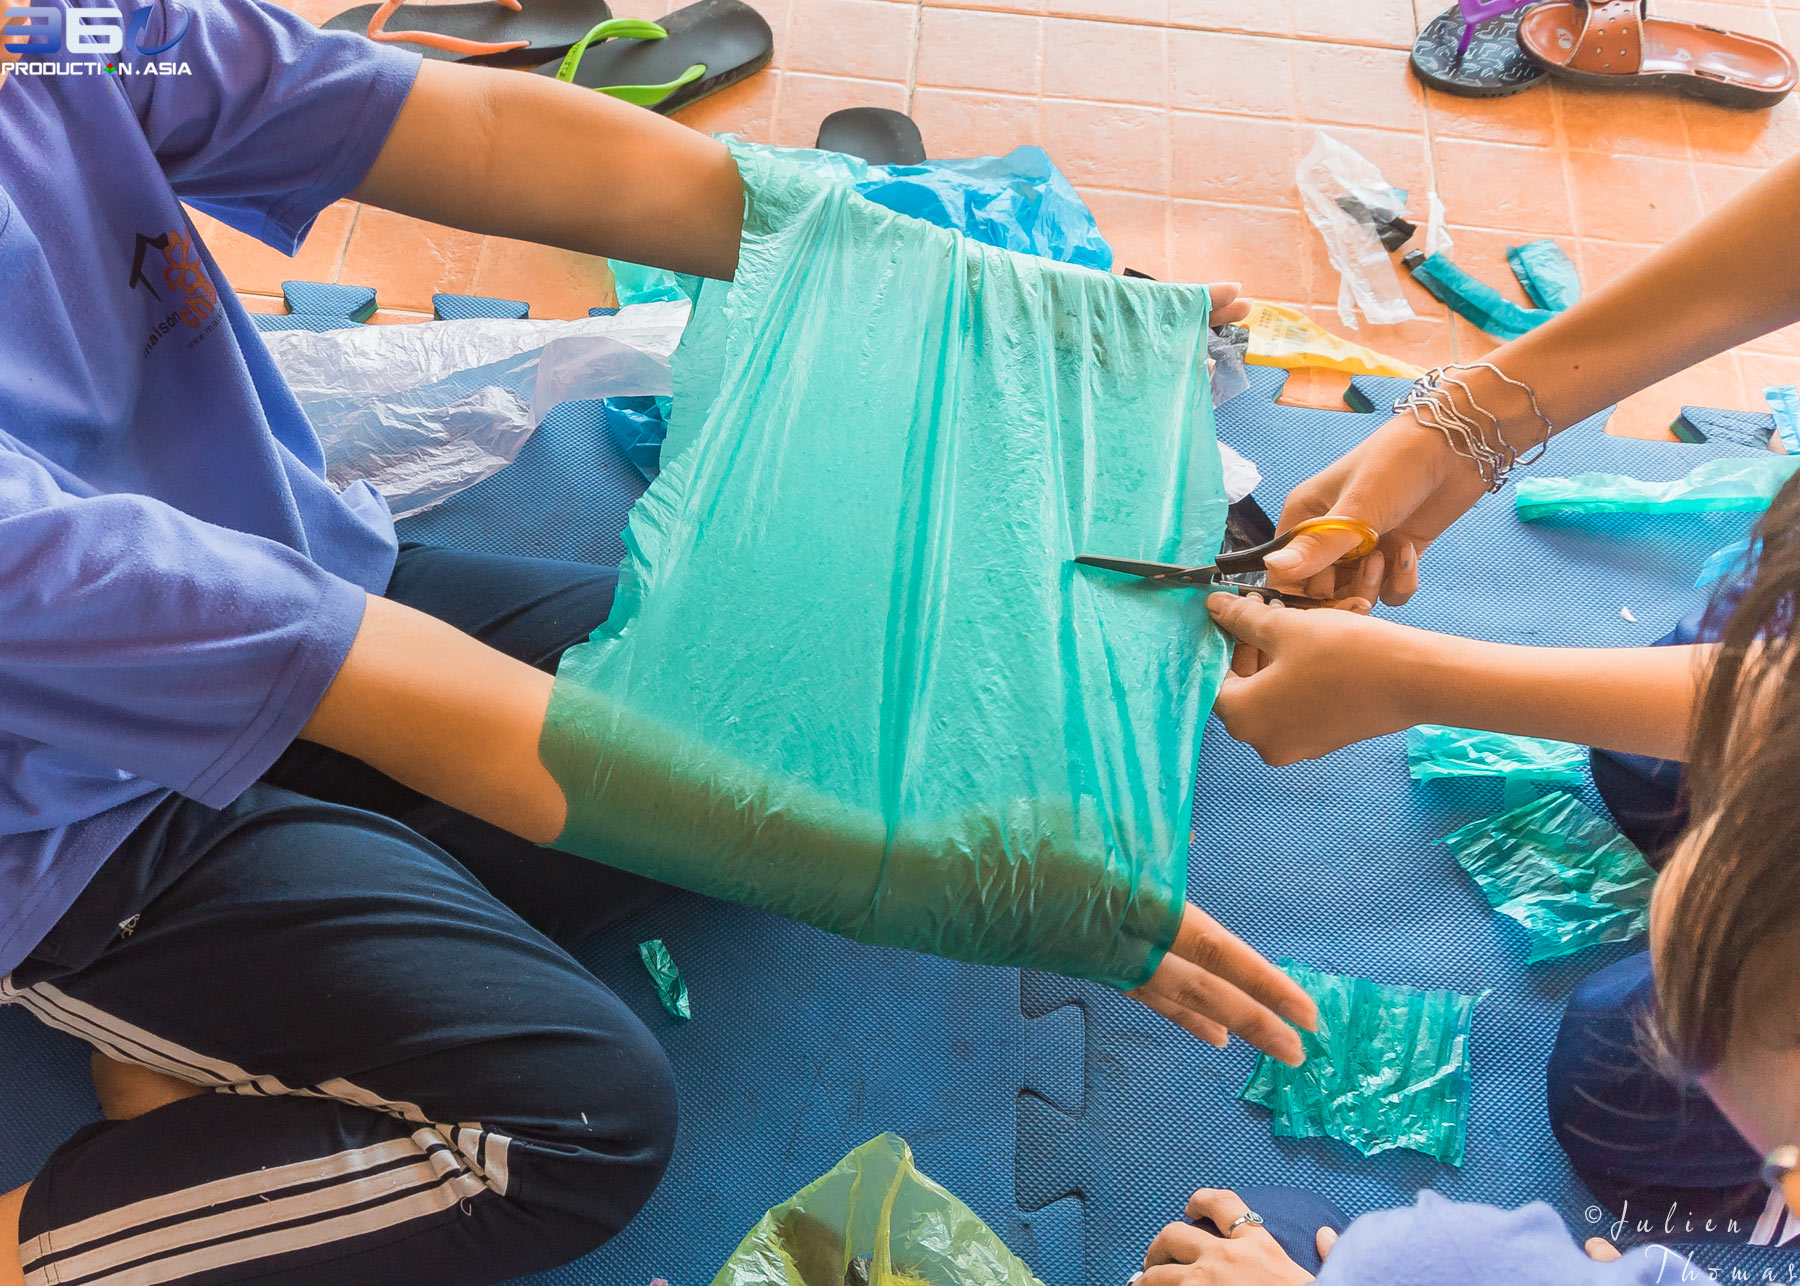 Students helping each others to work and cut the cleaned plastic waste to create children's crafts during a creative and ecological course in NGO Maison Chance.